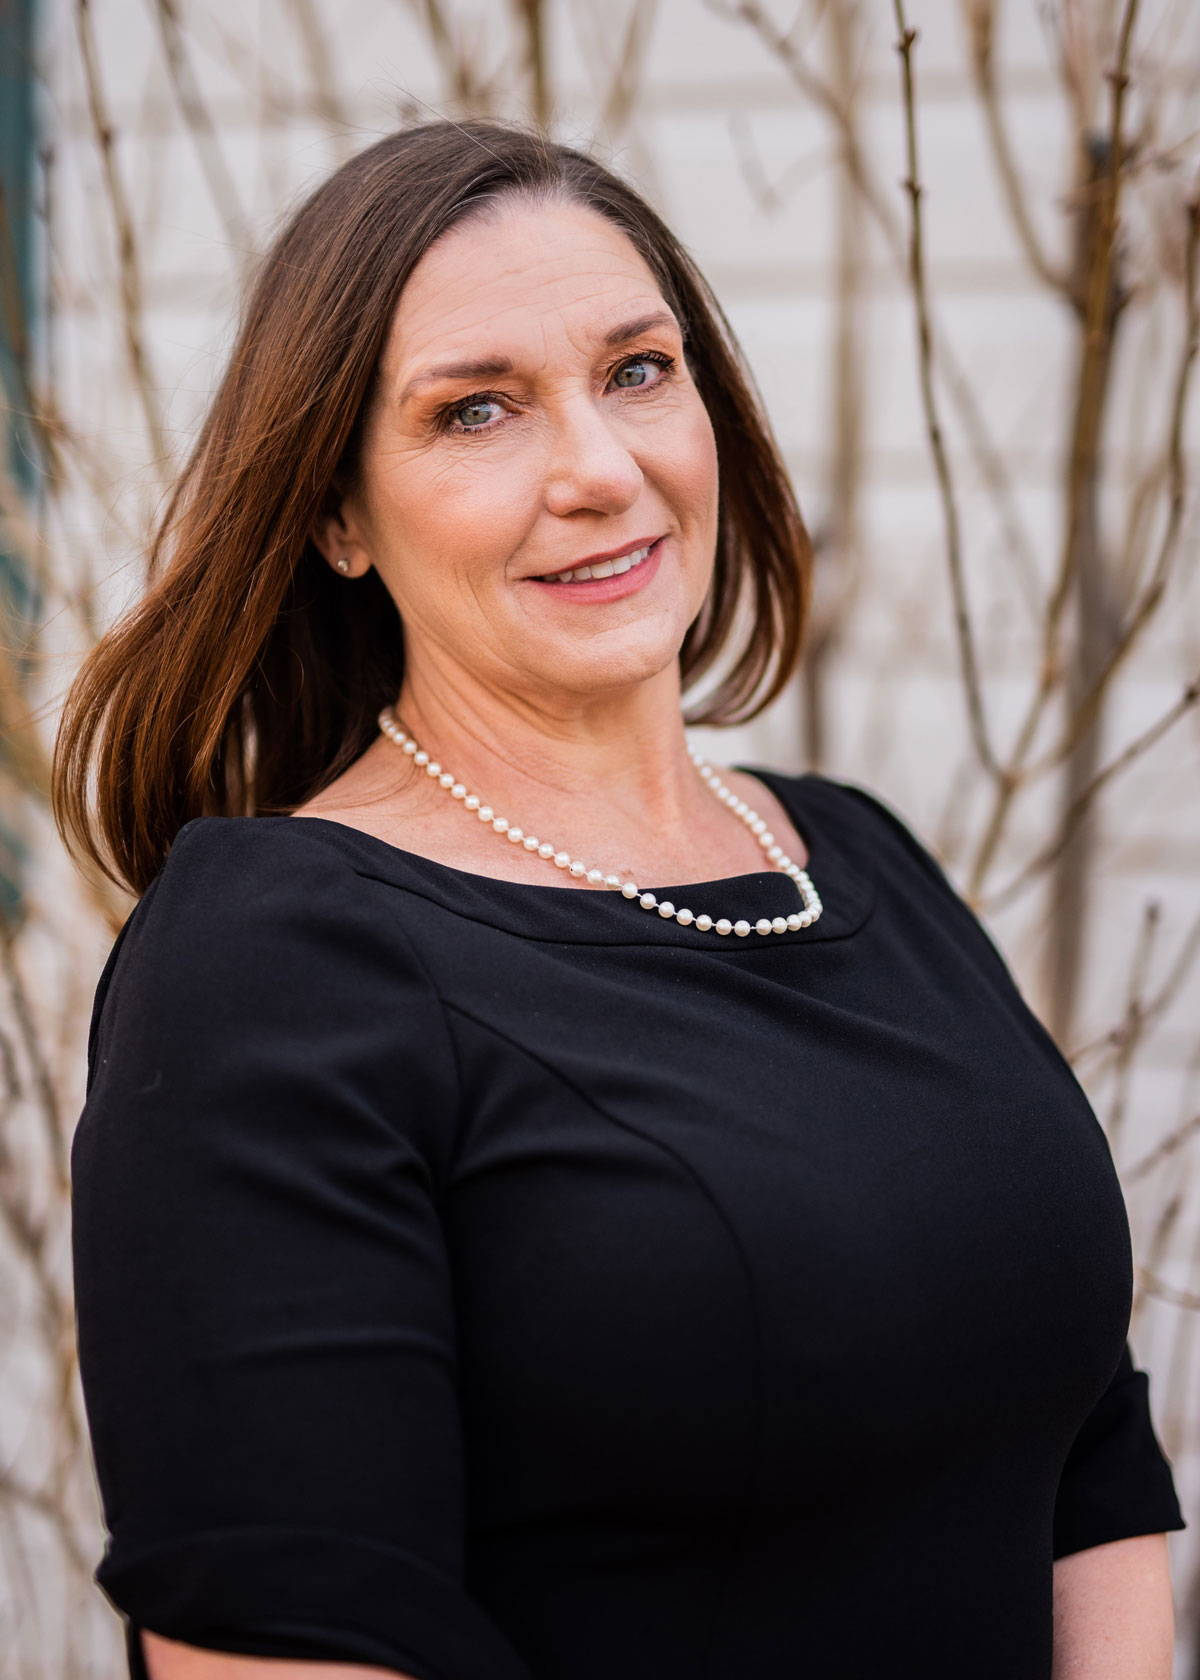 Dr. Veronica Sutherland, DO - Pinnacle Medical Group